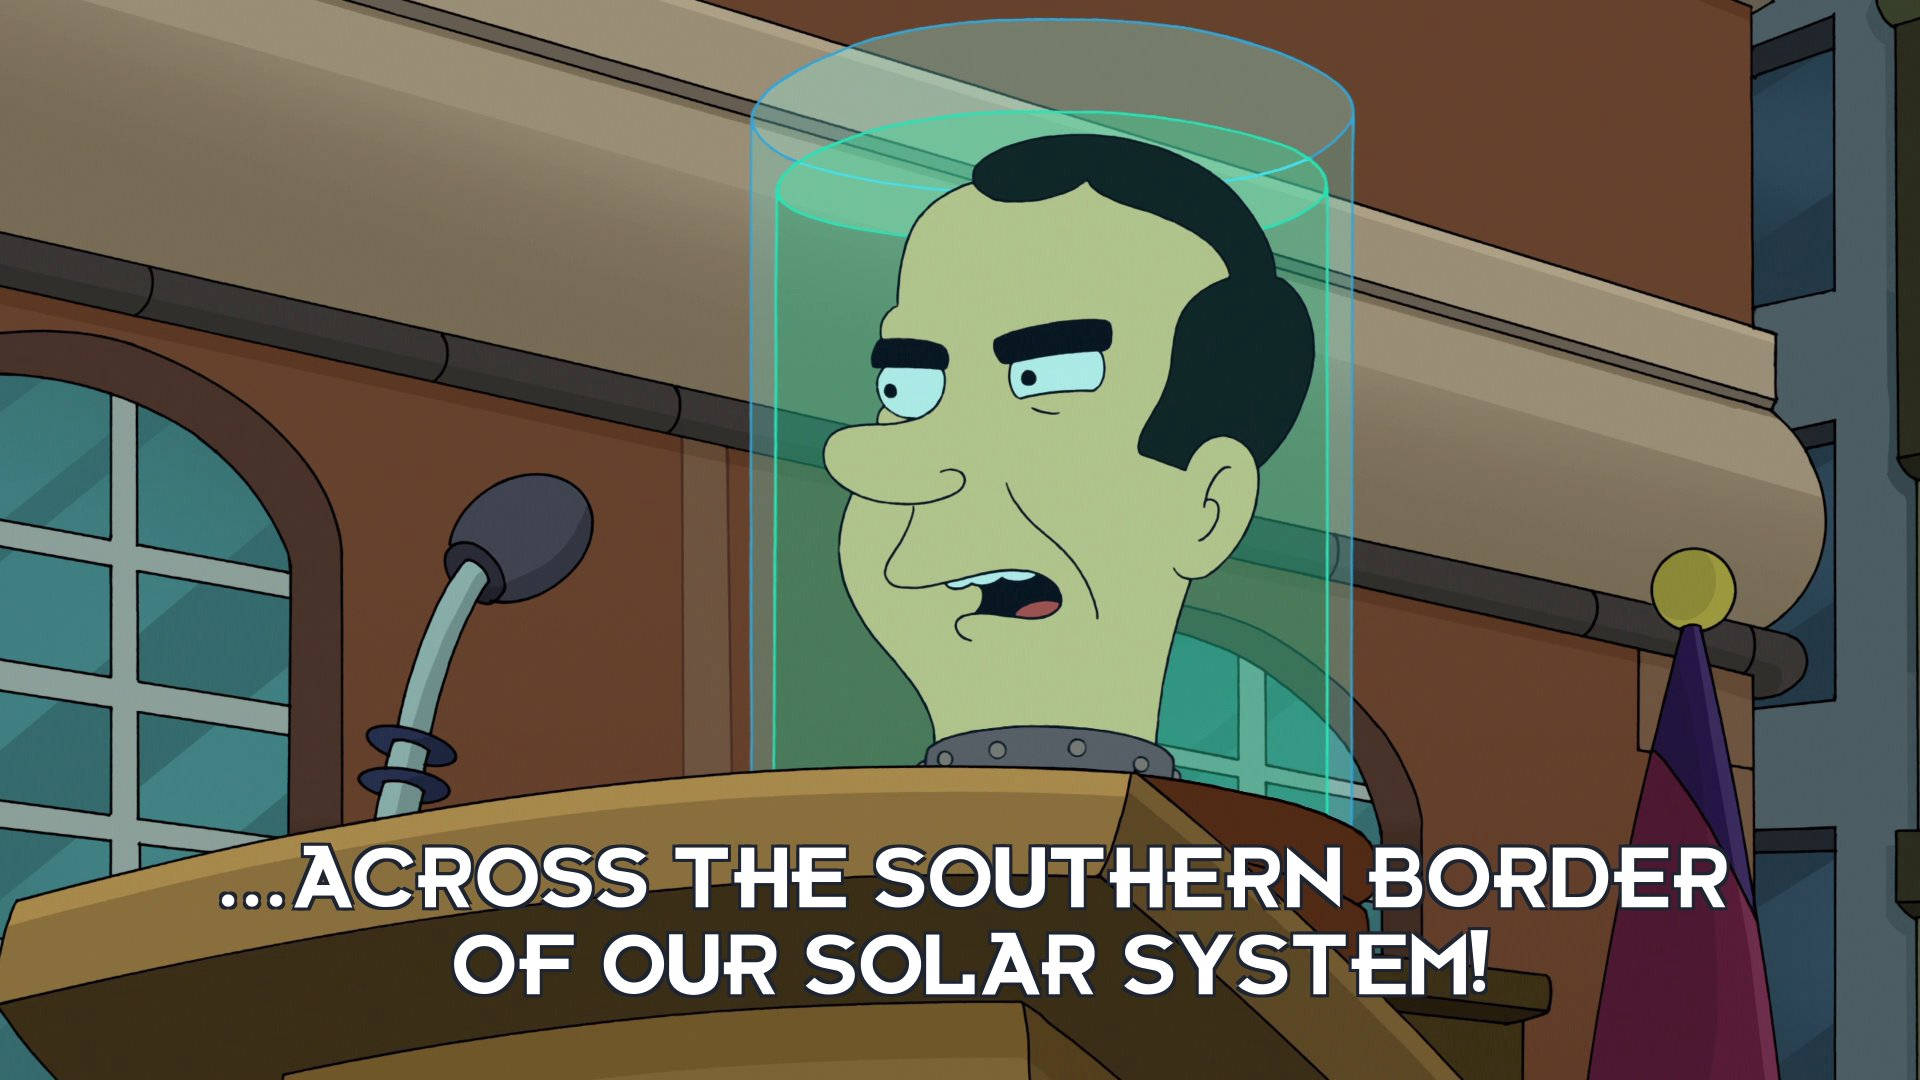 Richard Nixon's head: ...across the southern border of our solar system!